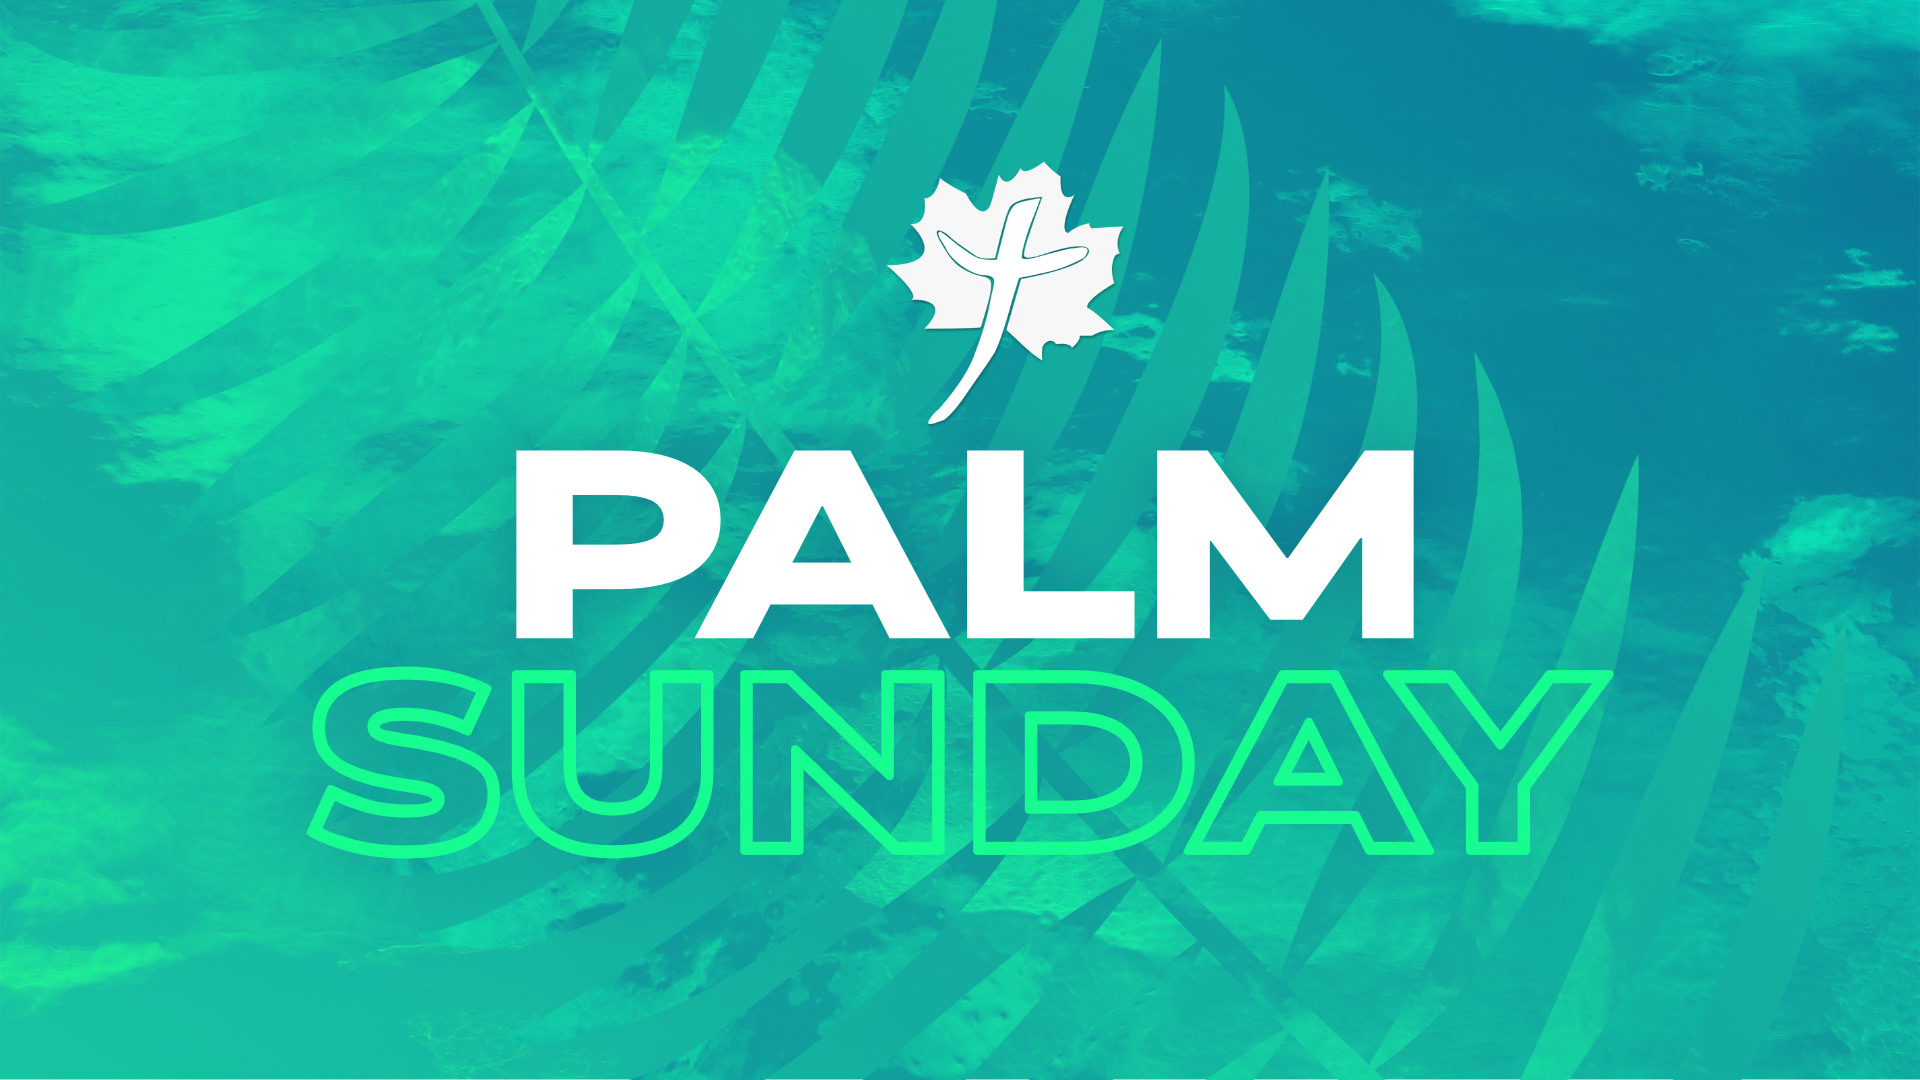 Palm Sunday • April 14, 2019